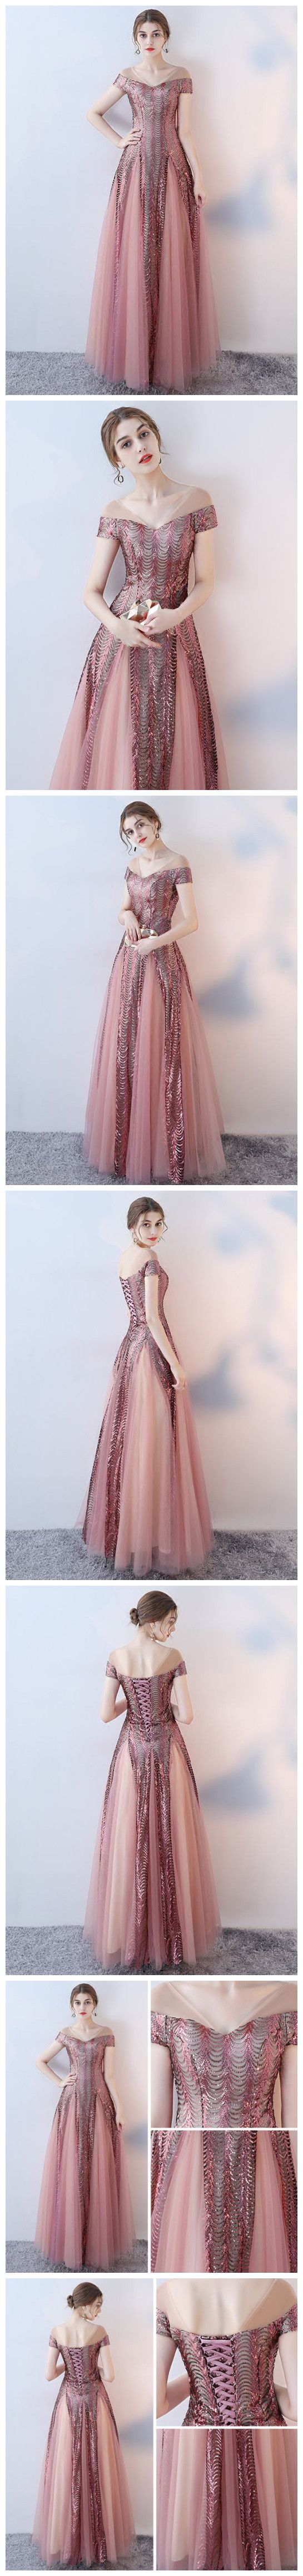 CHIC A-LINE V-NECK PINK FLOOR LENGTH SEQUINS LONG PROM DRESS EVENING DRESS AM619